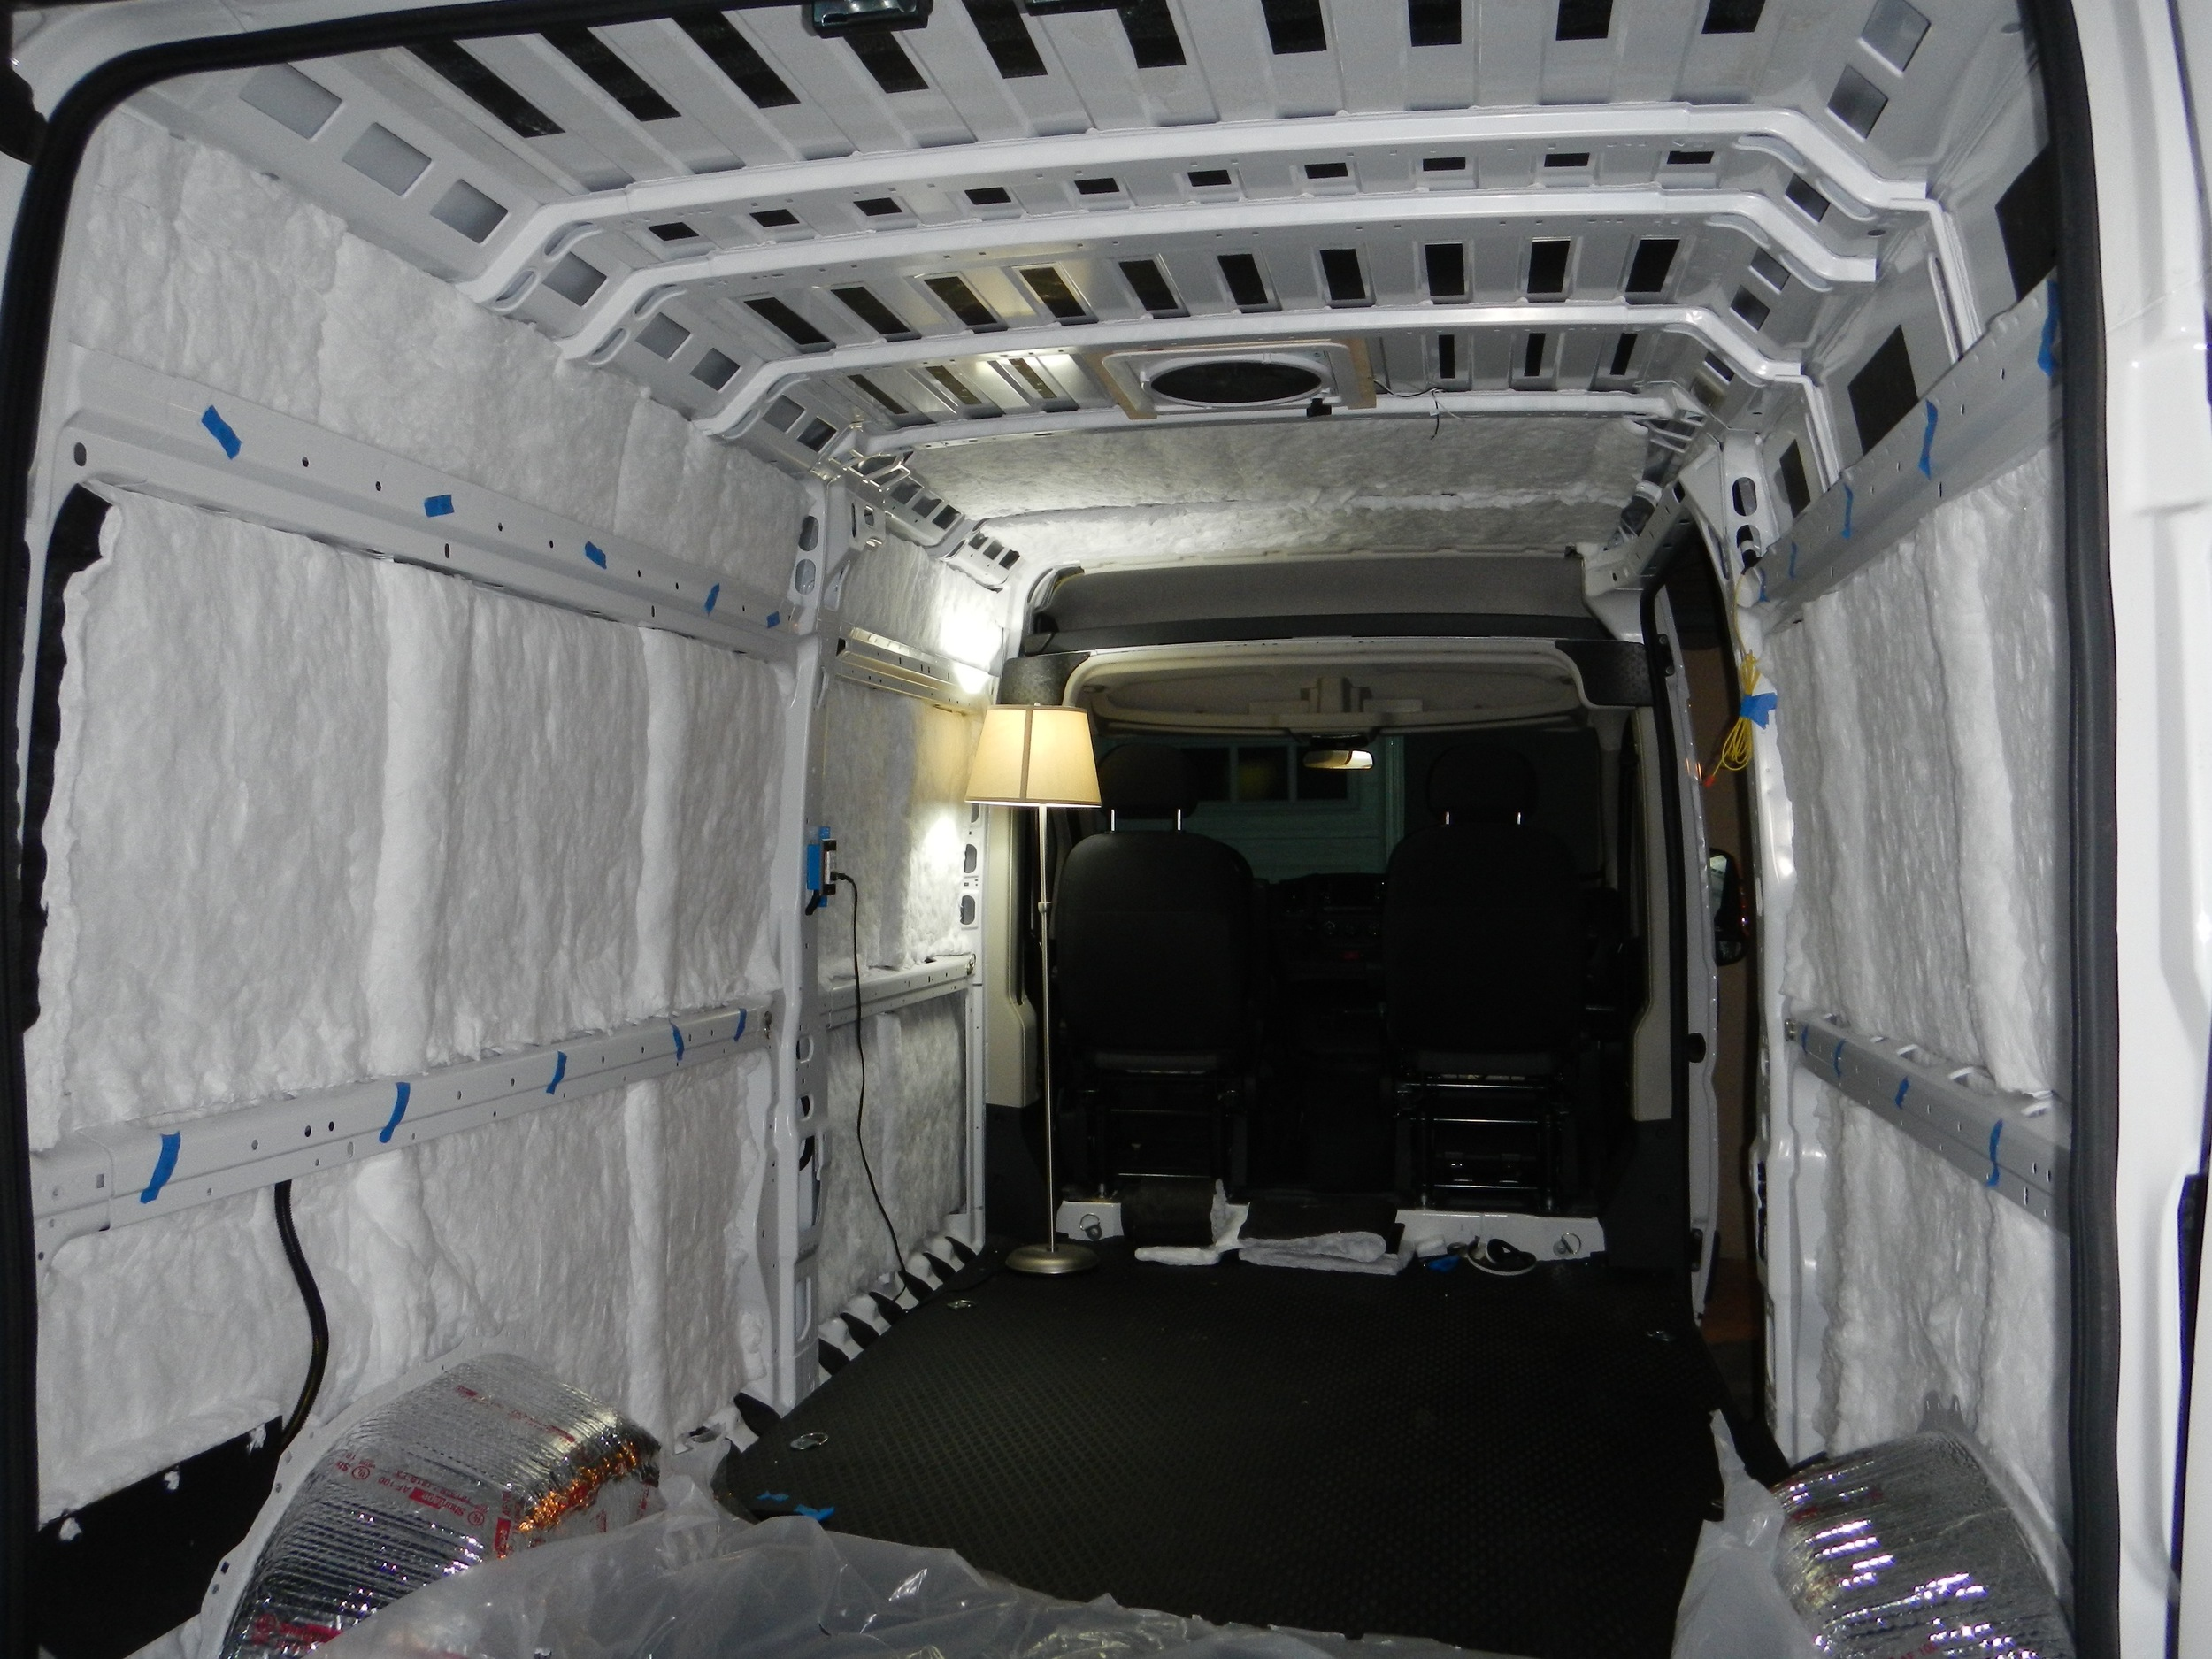 Here we have insulation on most of the walls and some of the ceiling. Somehow we failed to take (or save) a photo of the fully insulated van before moving on to the next step. Doh!